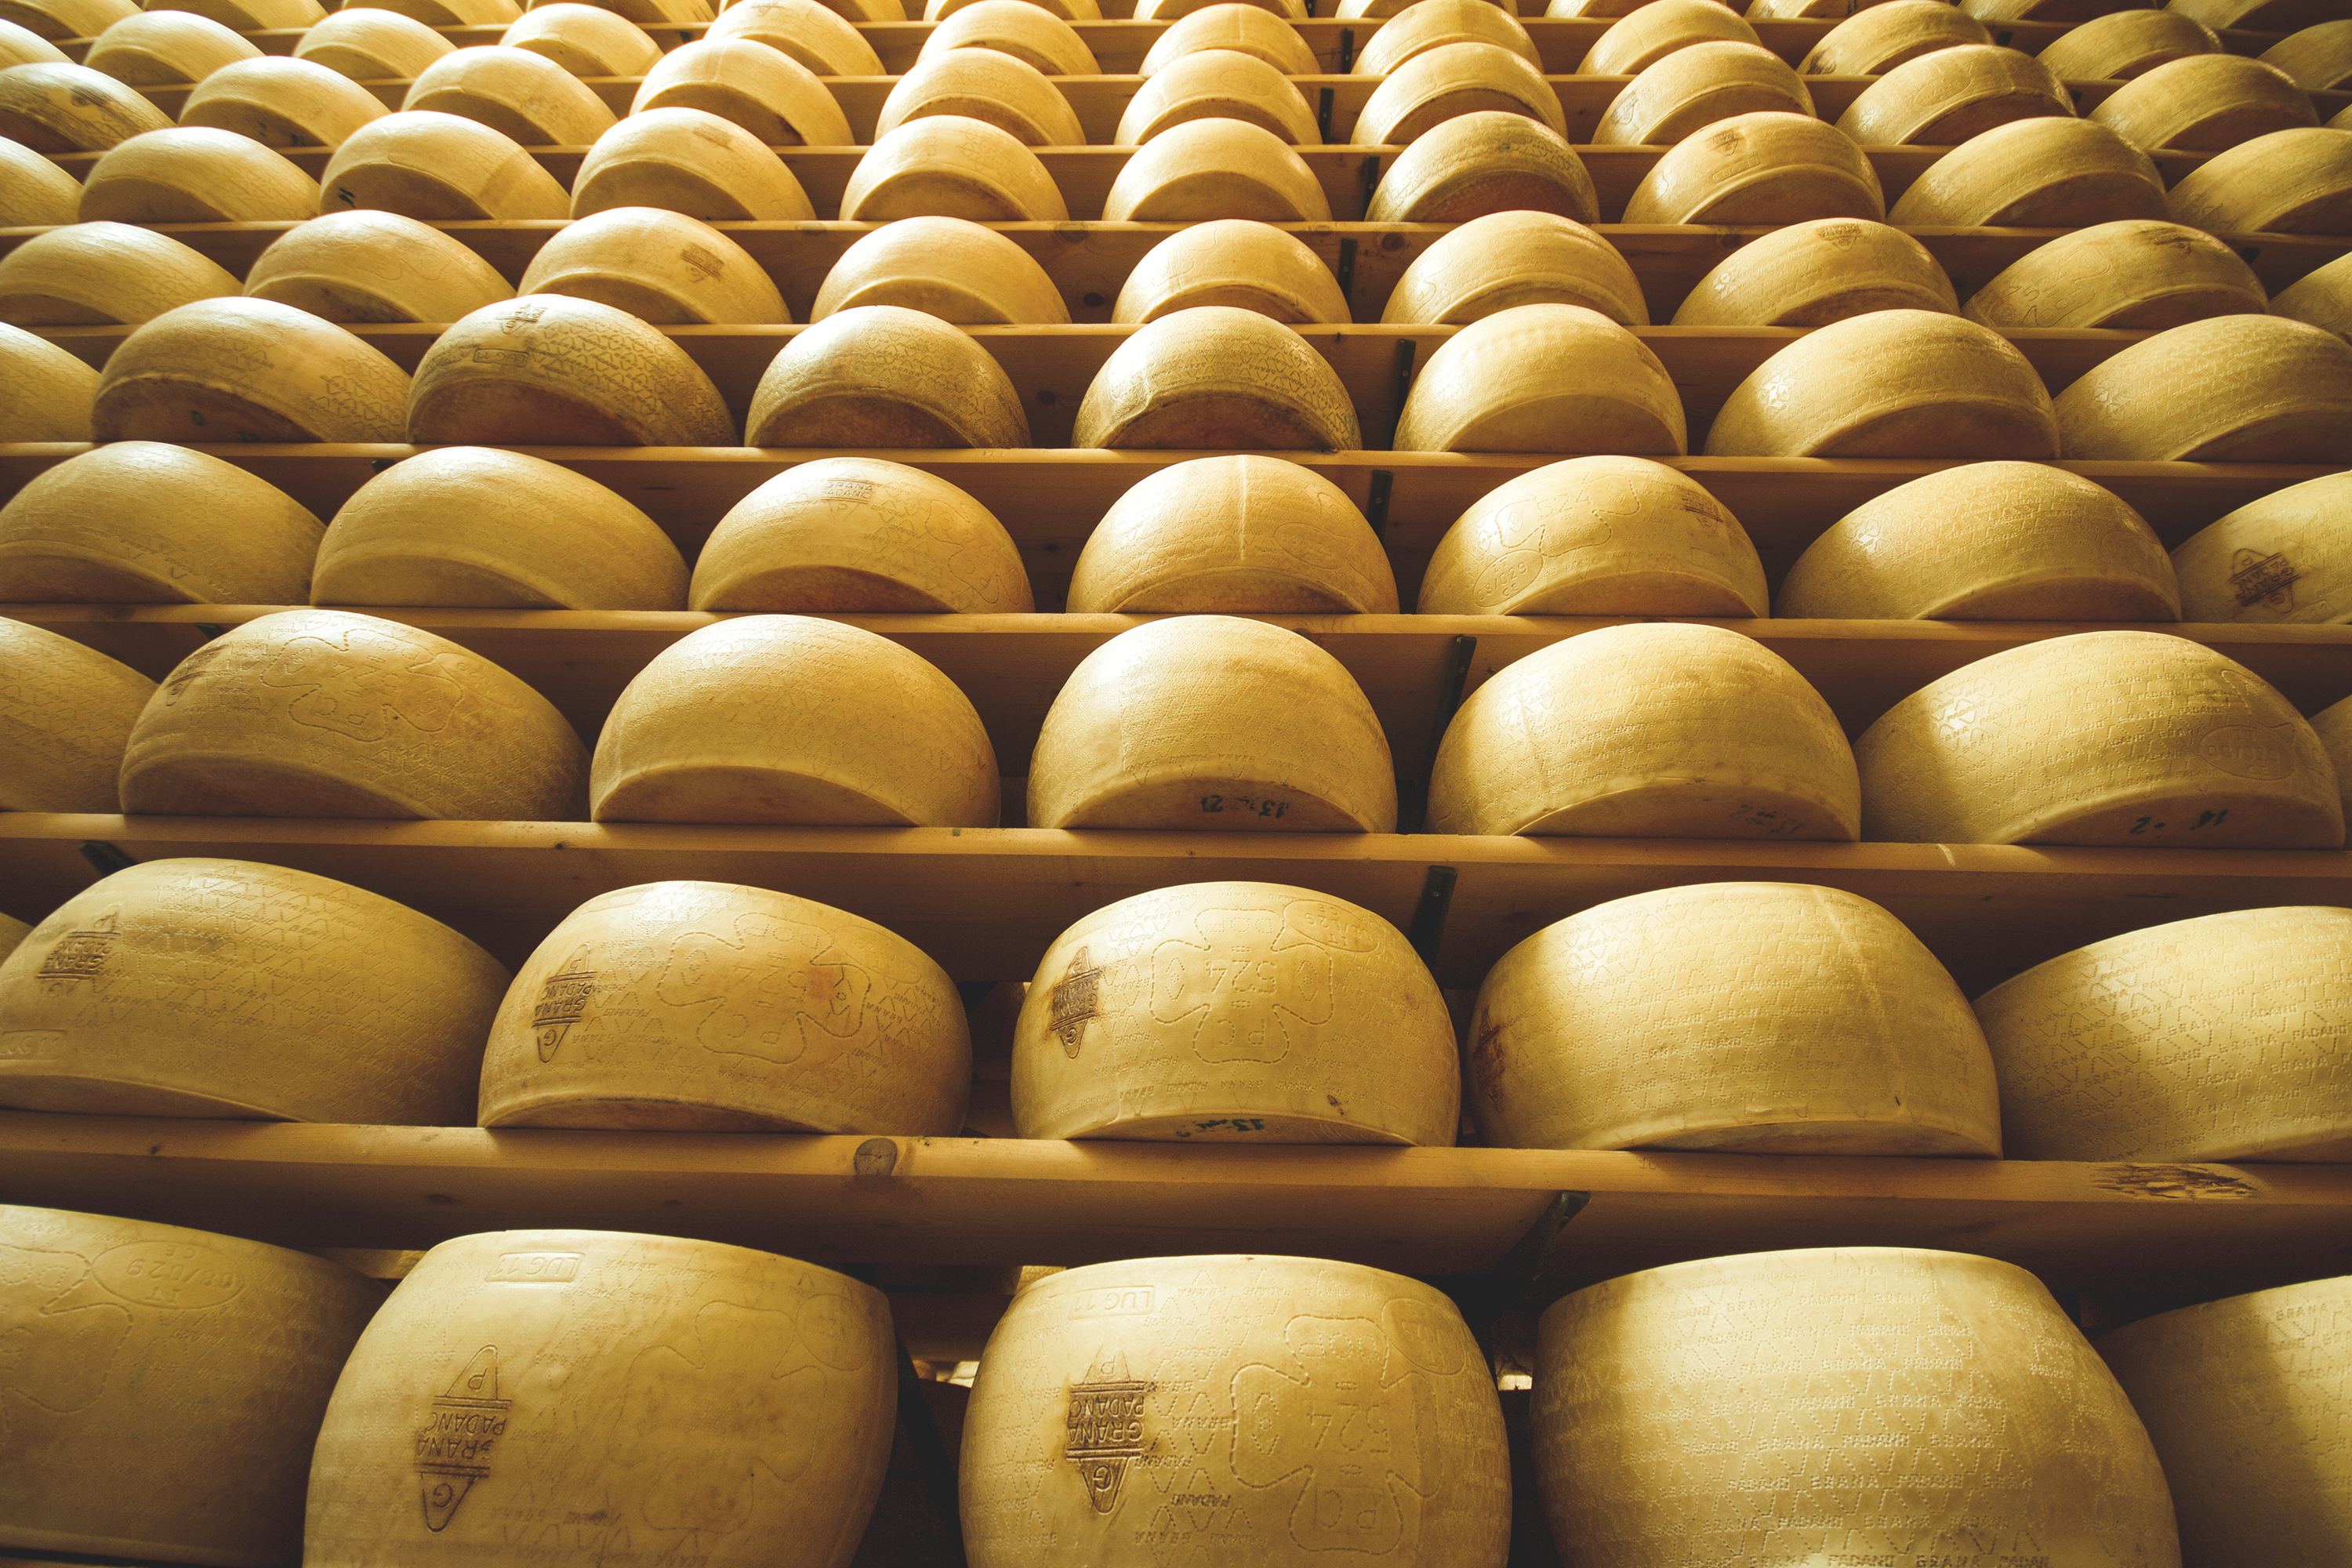 Vertical view of freshly made wheels of cheese